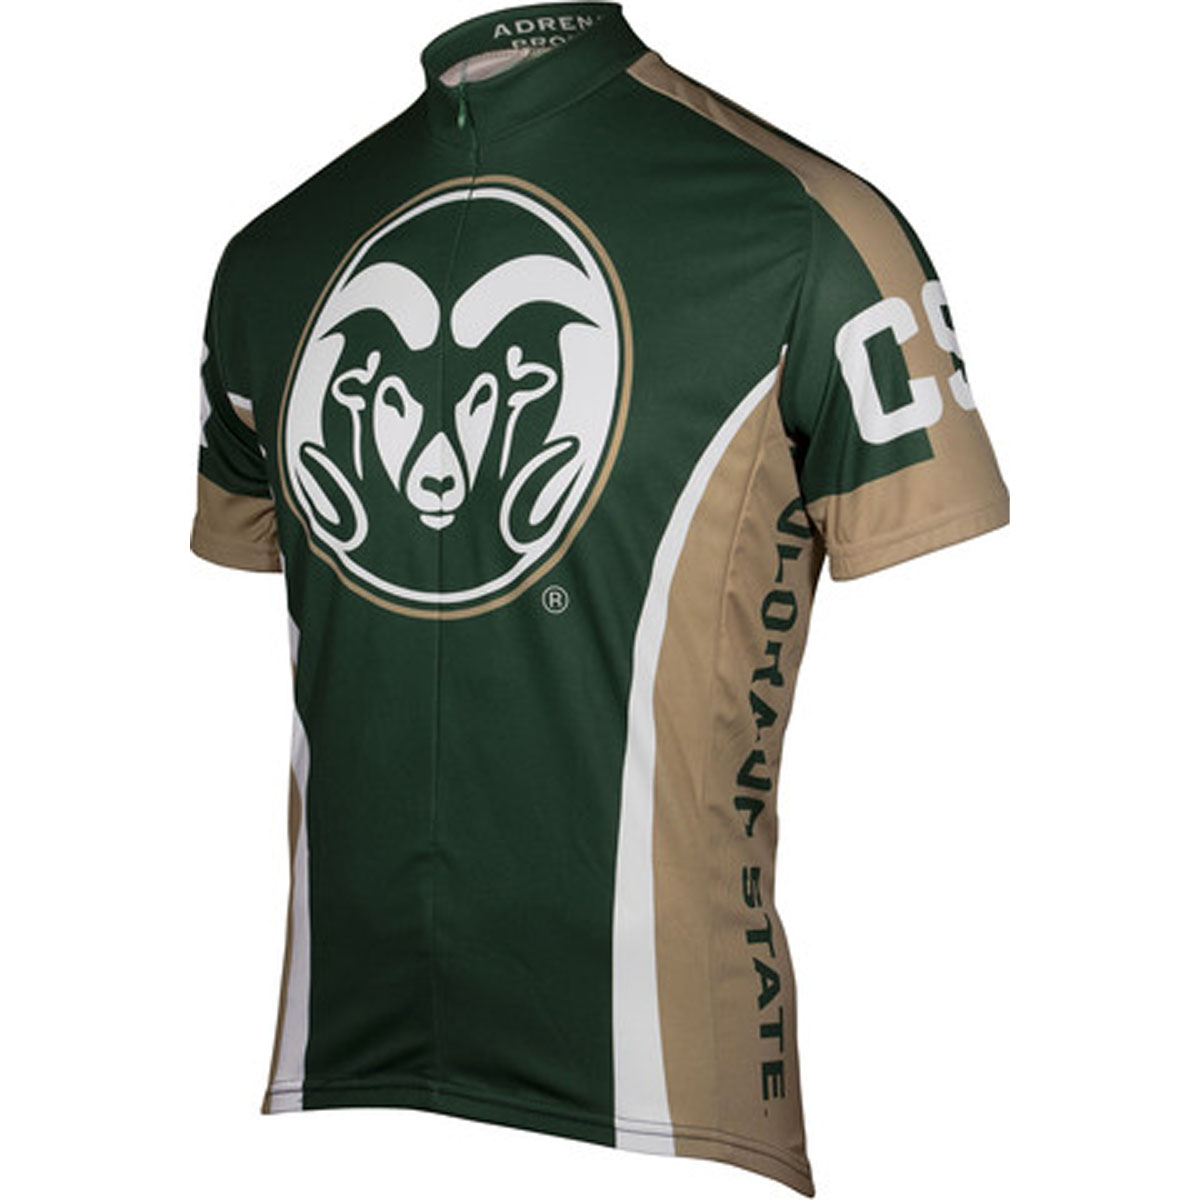 Adrenaline Promotions Colorado State University Cycling Jersey